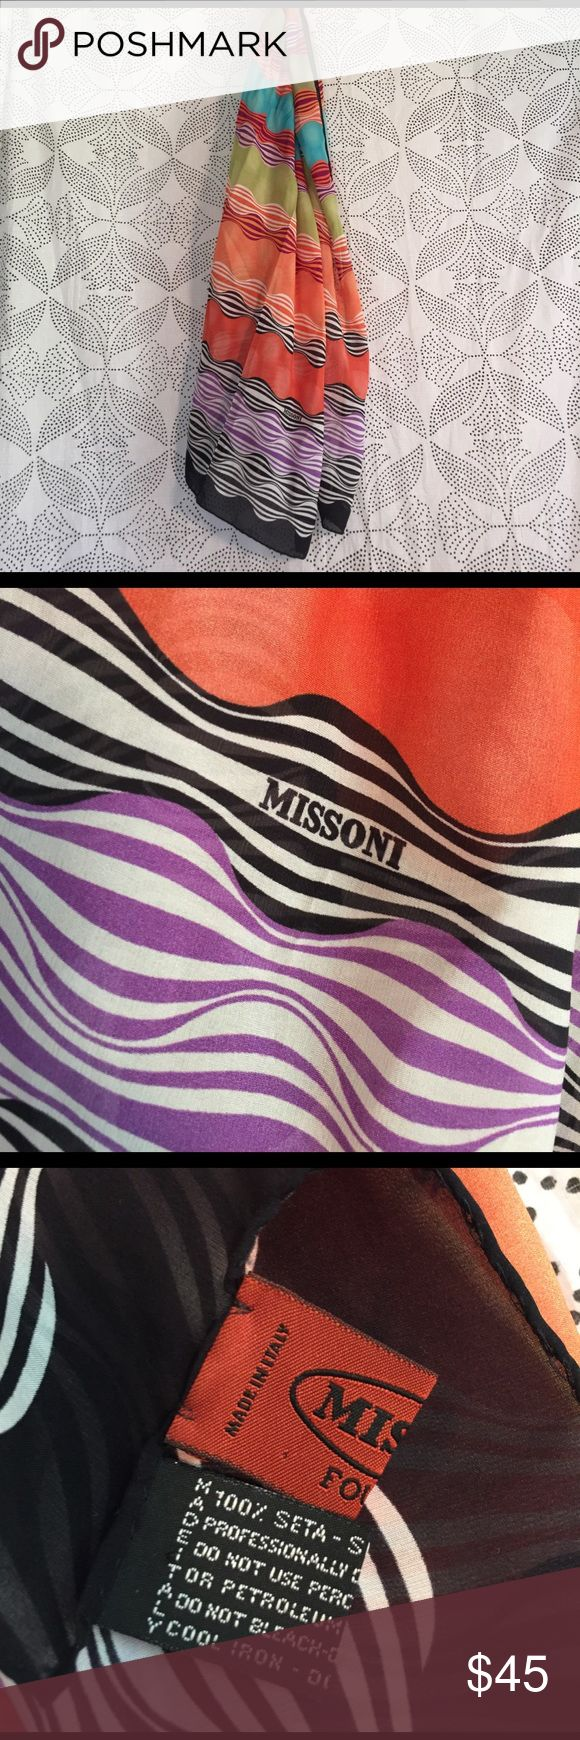 SILK Missoni scarf Fun funky 💯 % SILK missoni scarf Missoni Accessories Scarves & Wraps